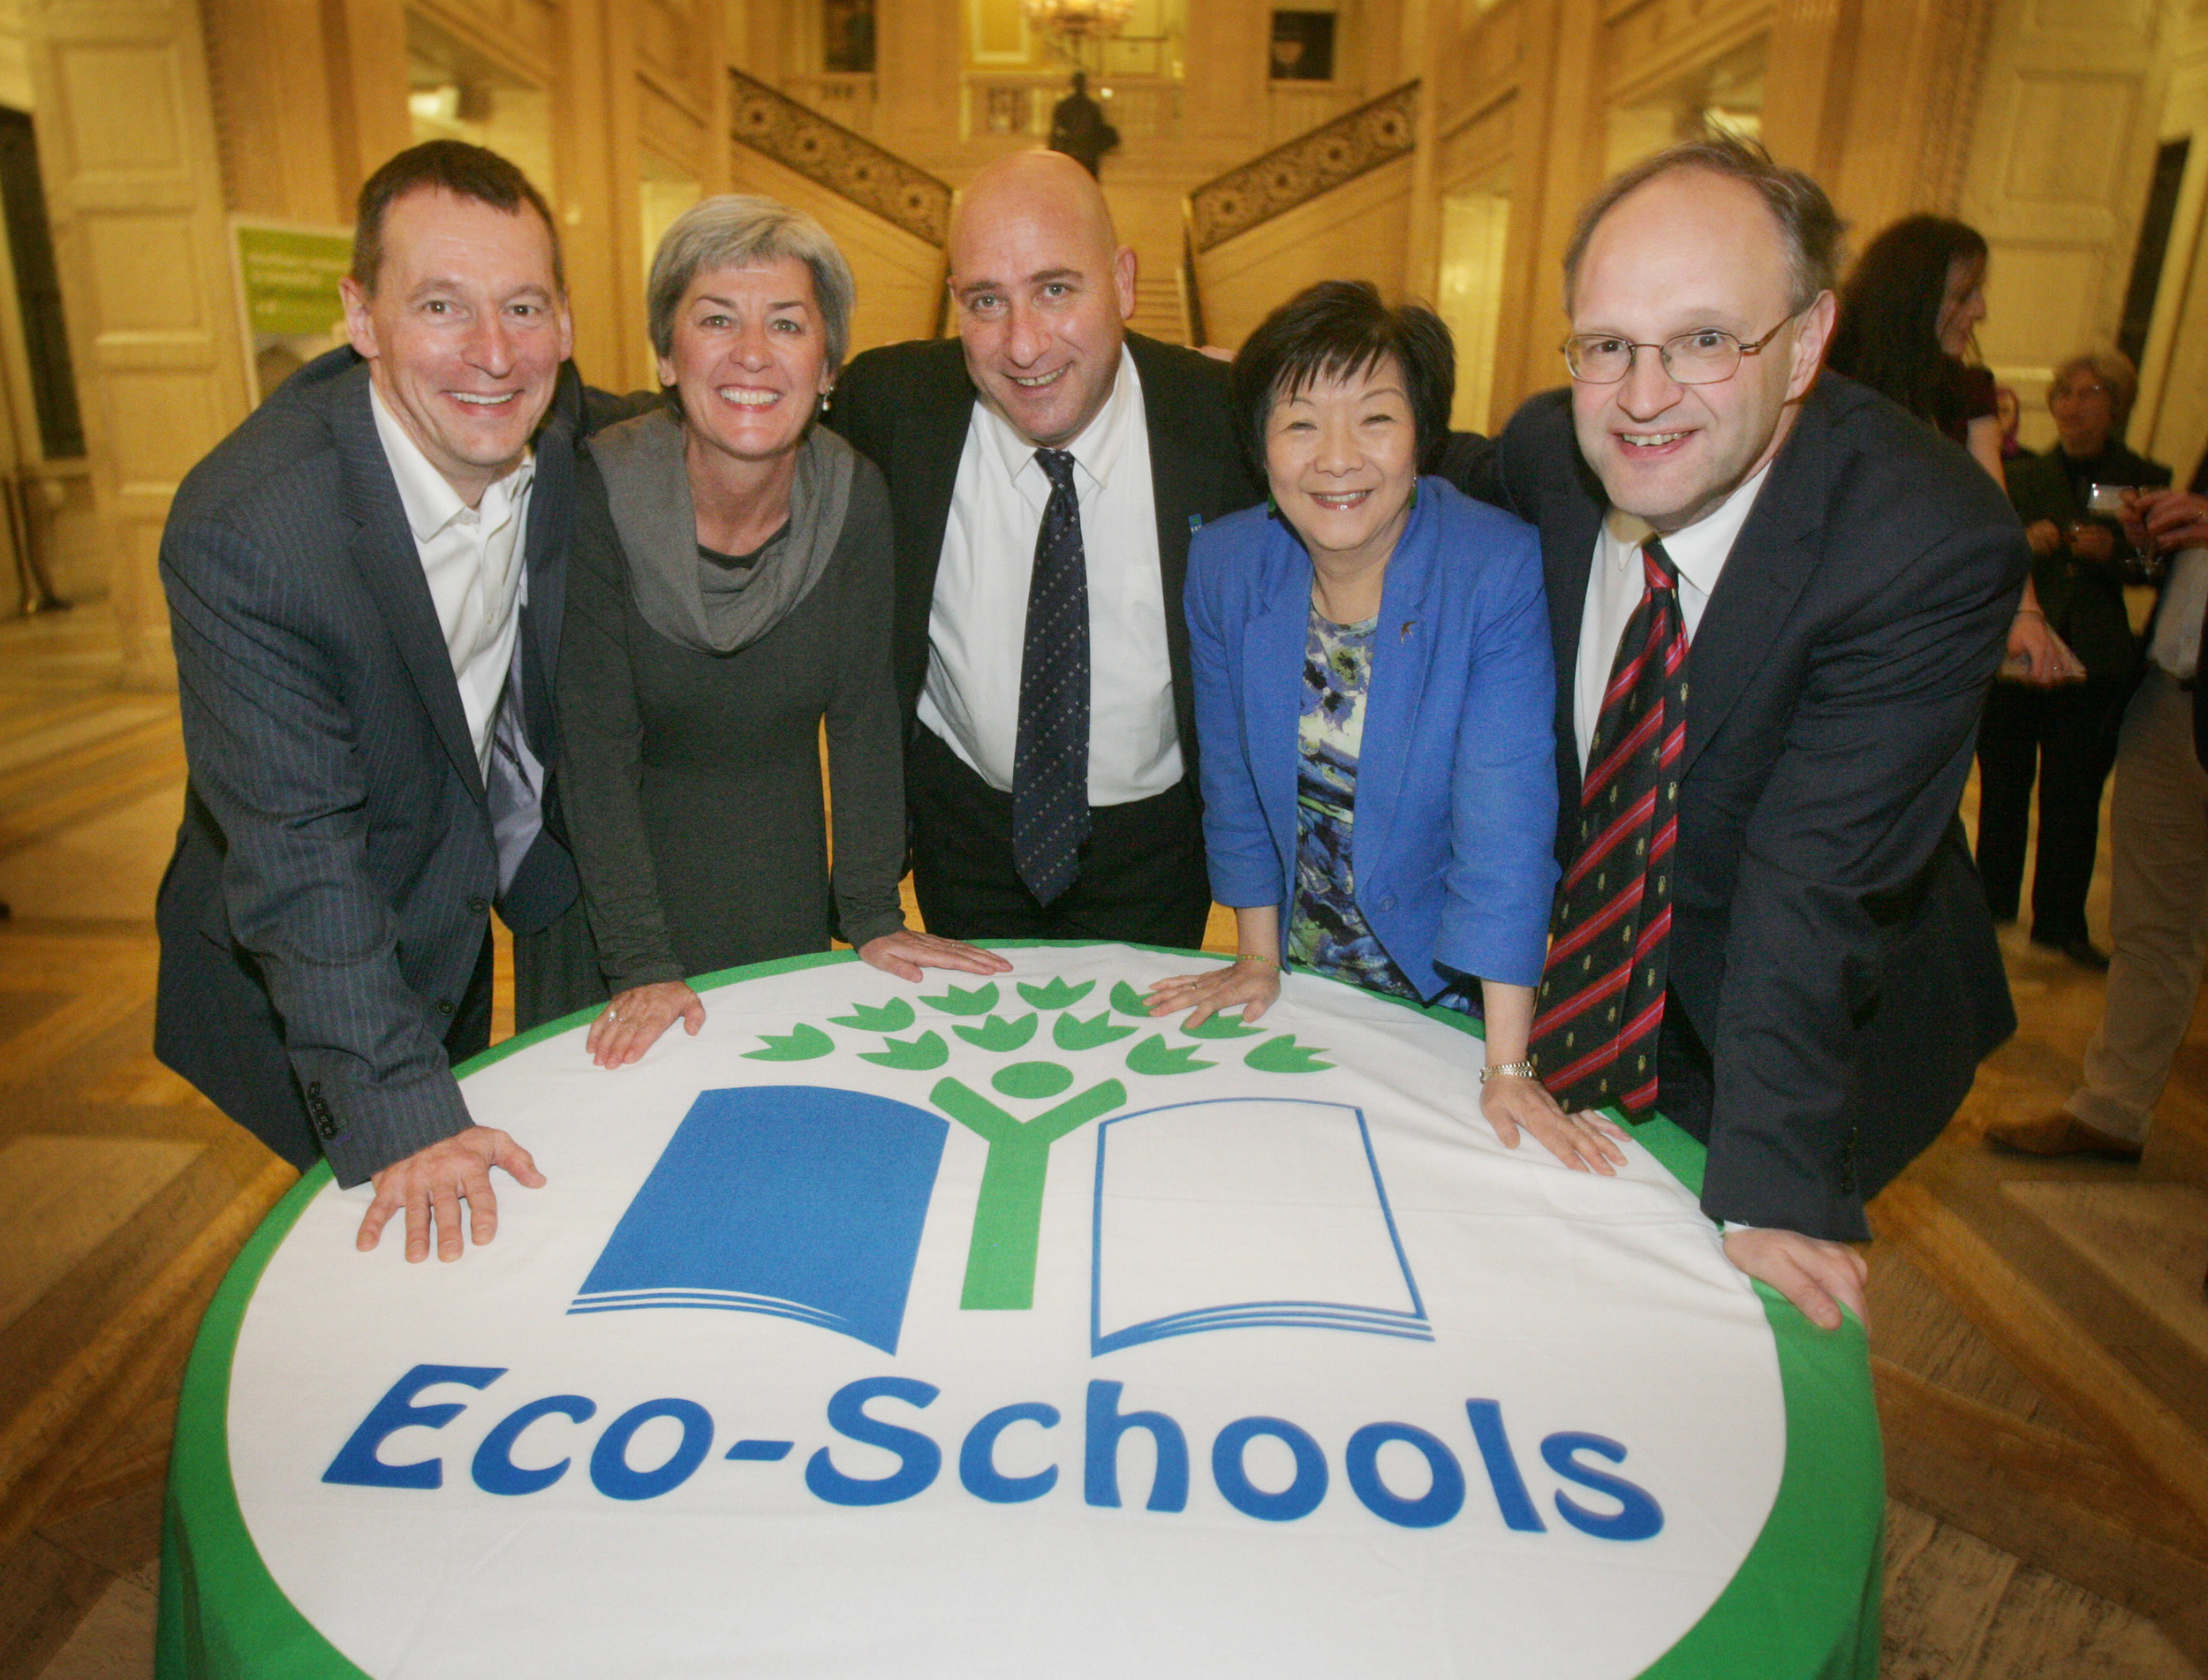 Pictured from left to right are Dr Ian Humphreys, CEO Keep Northern Ireland Beautiful; Bríd Conneely, International Director of Eco-Schools; Daniel Schaffer, CEO Foundation for Environmental Education; Anna Lo MLA, Chair of the Environment Committee; and David Weir MLA, Chair of the Education Committee.